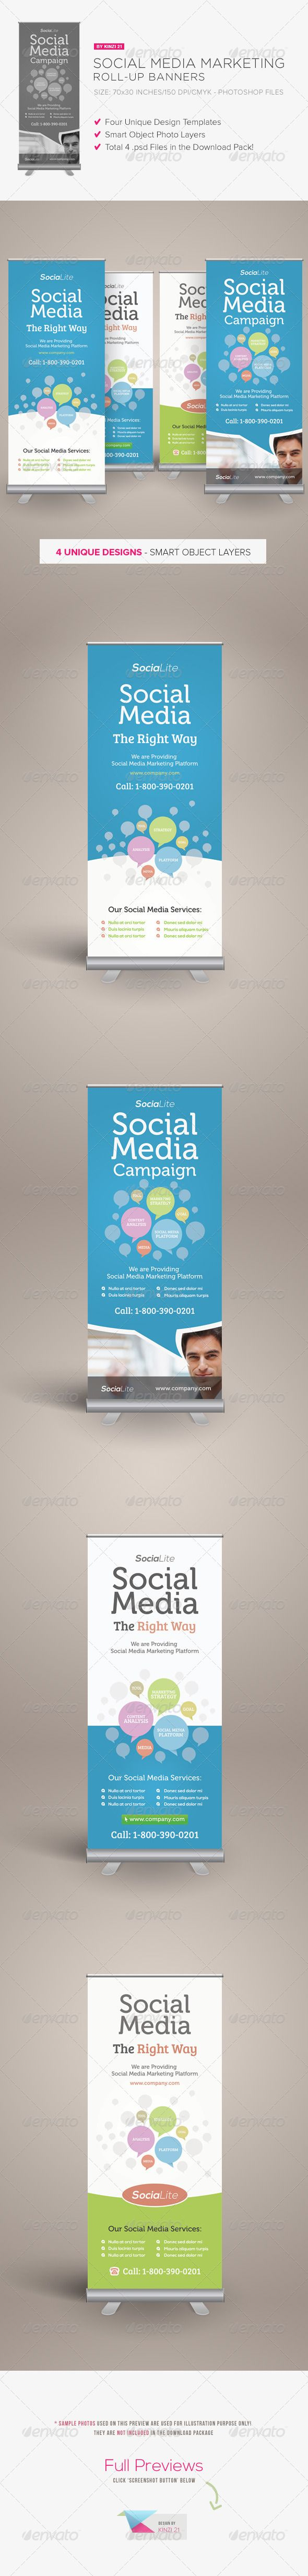 Social Media Marketing Roll-up Banners Template PSD. Download here: http://graphicriver.net/item/social-media-marketing-rollup-banners/3907853?s_rank=44&ref=yinkira